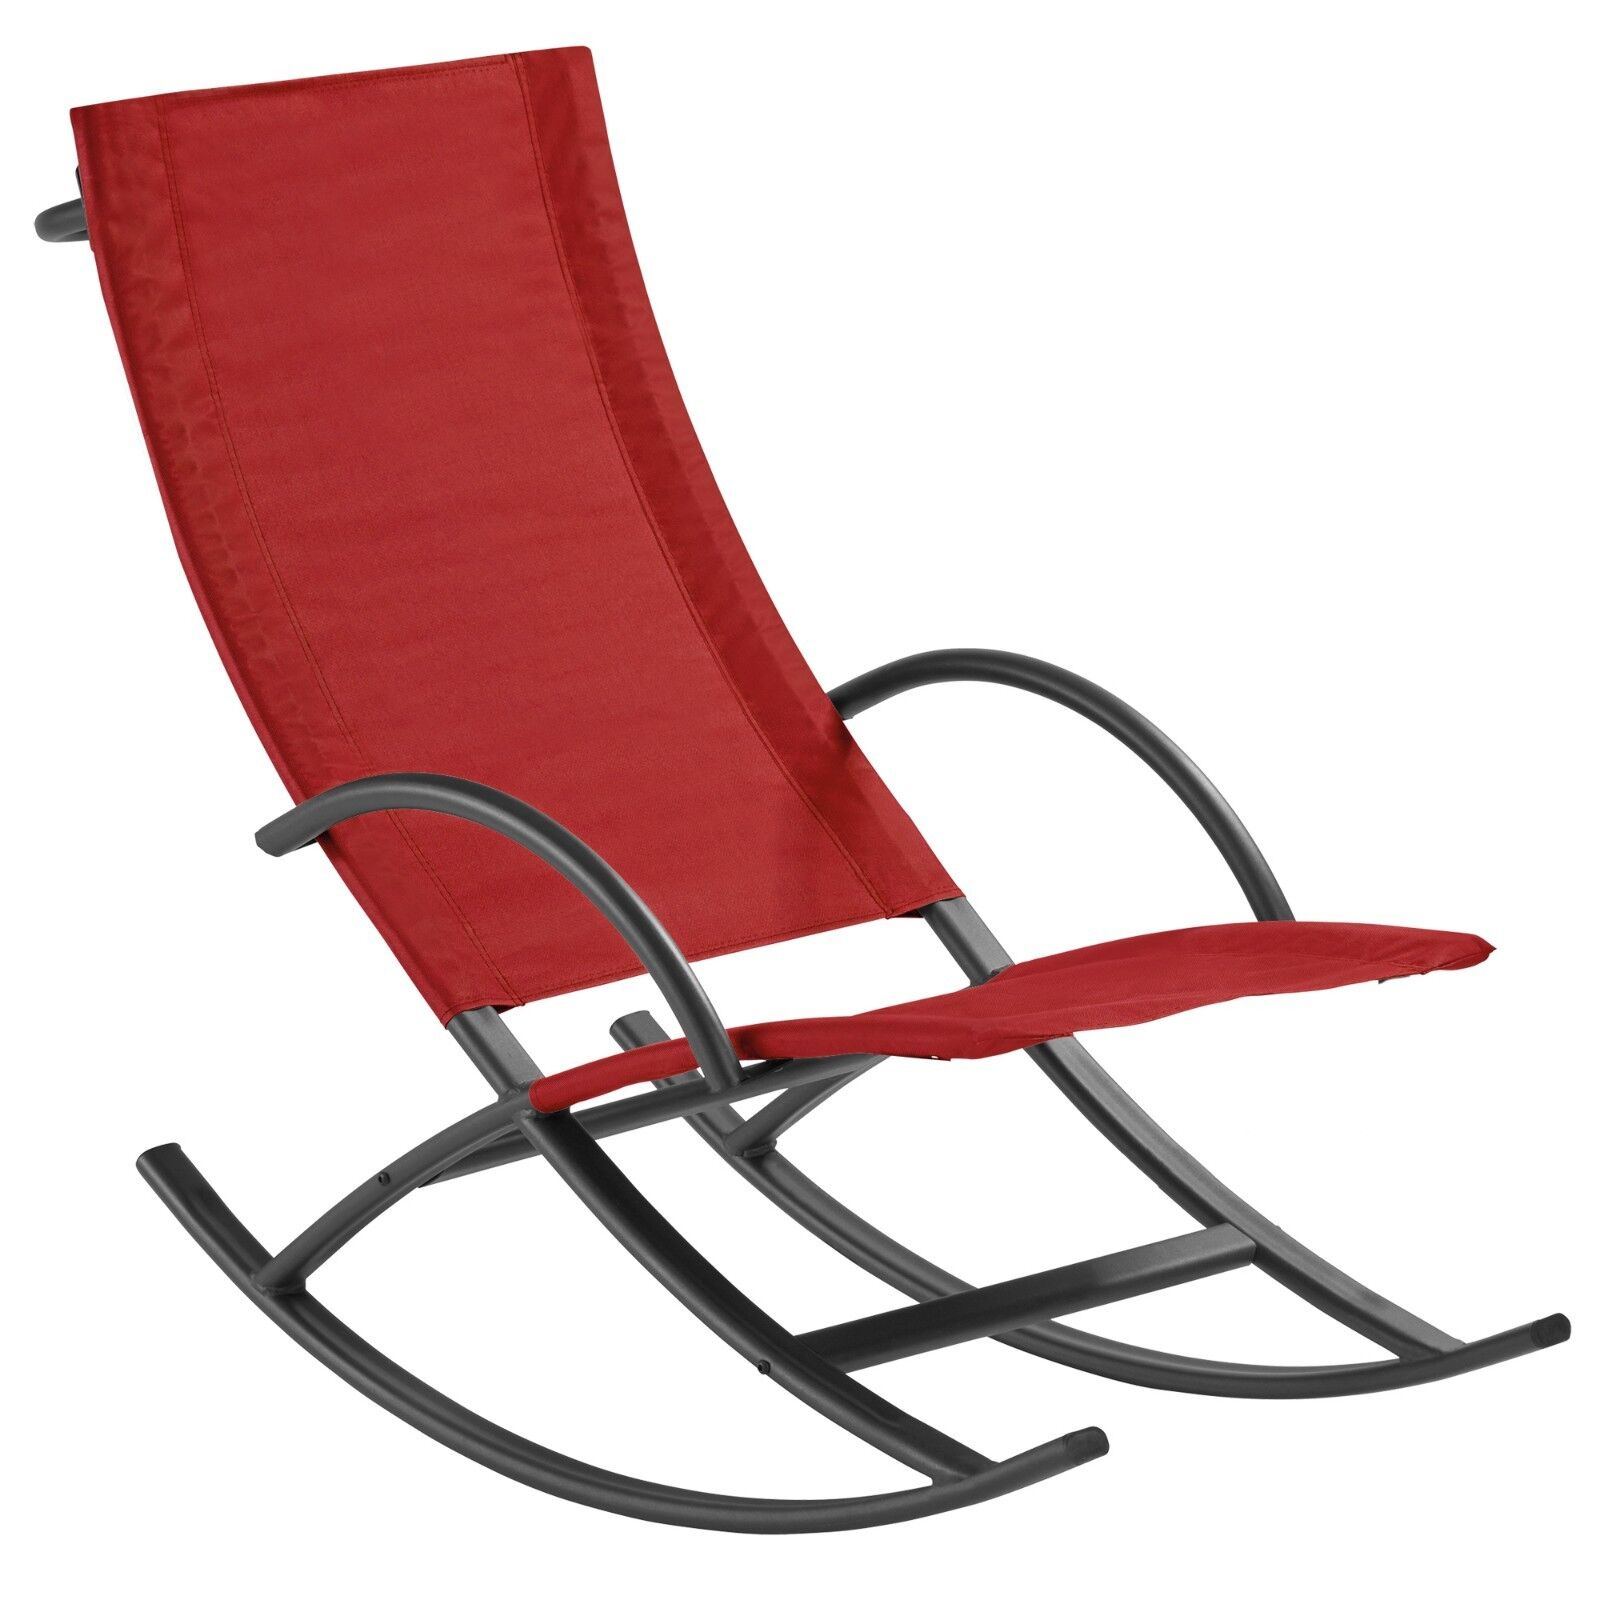 Details About Garden Rocking Chair Sun Lounger Zero Gravity Patio Decking Curved Swinging Seat